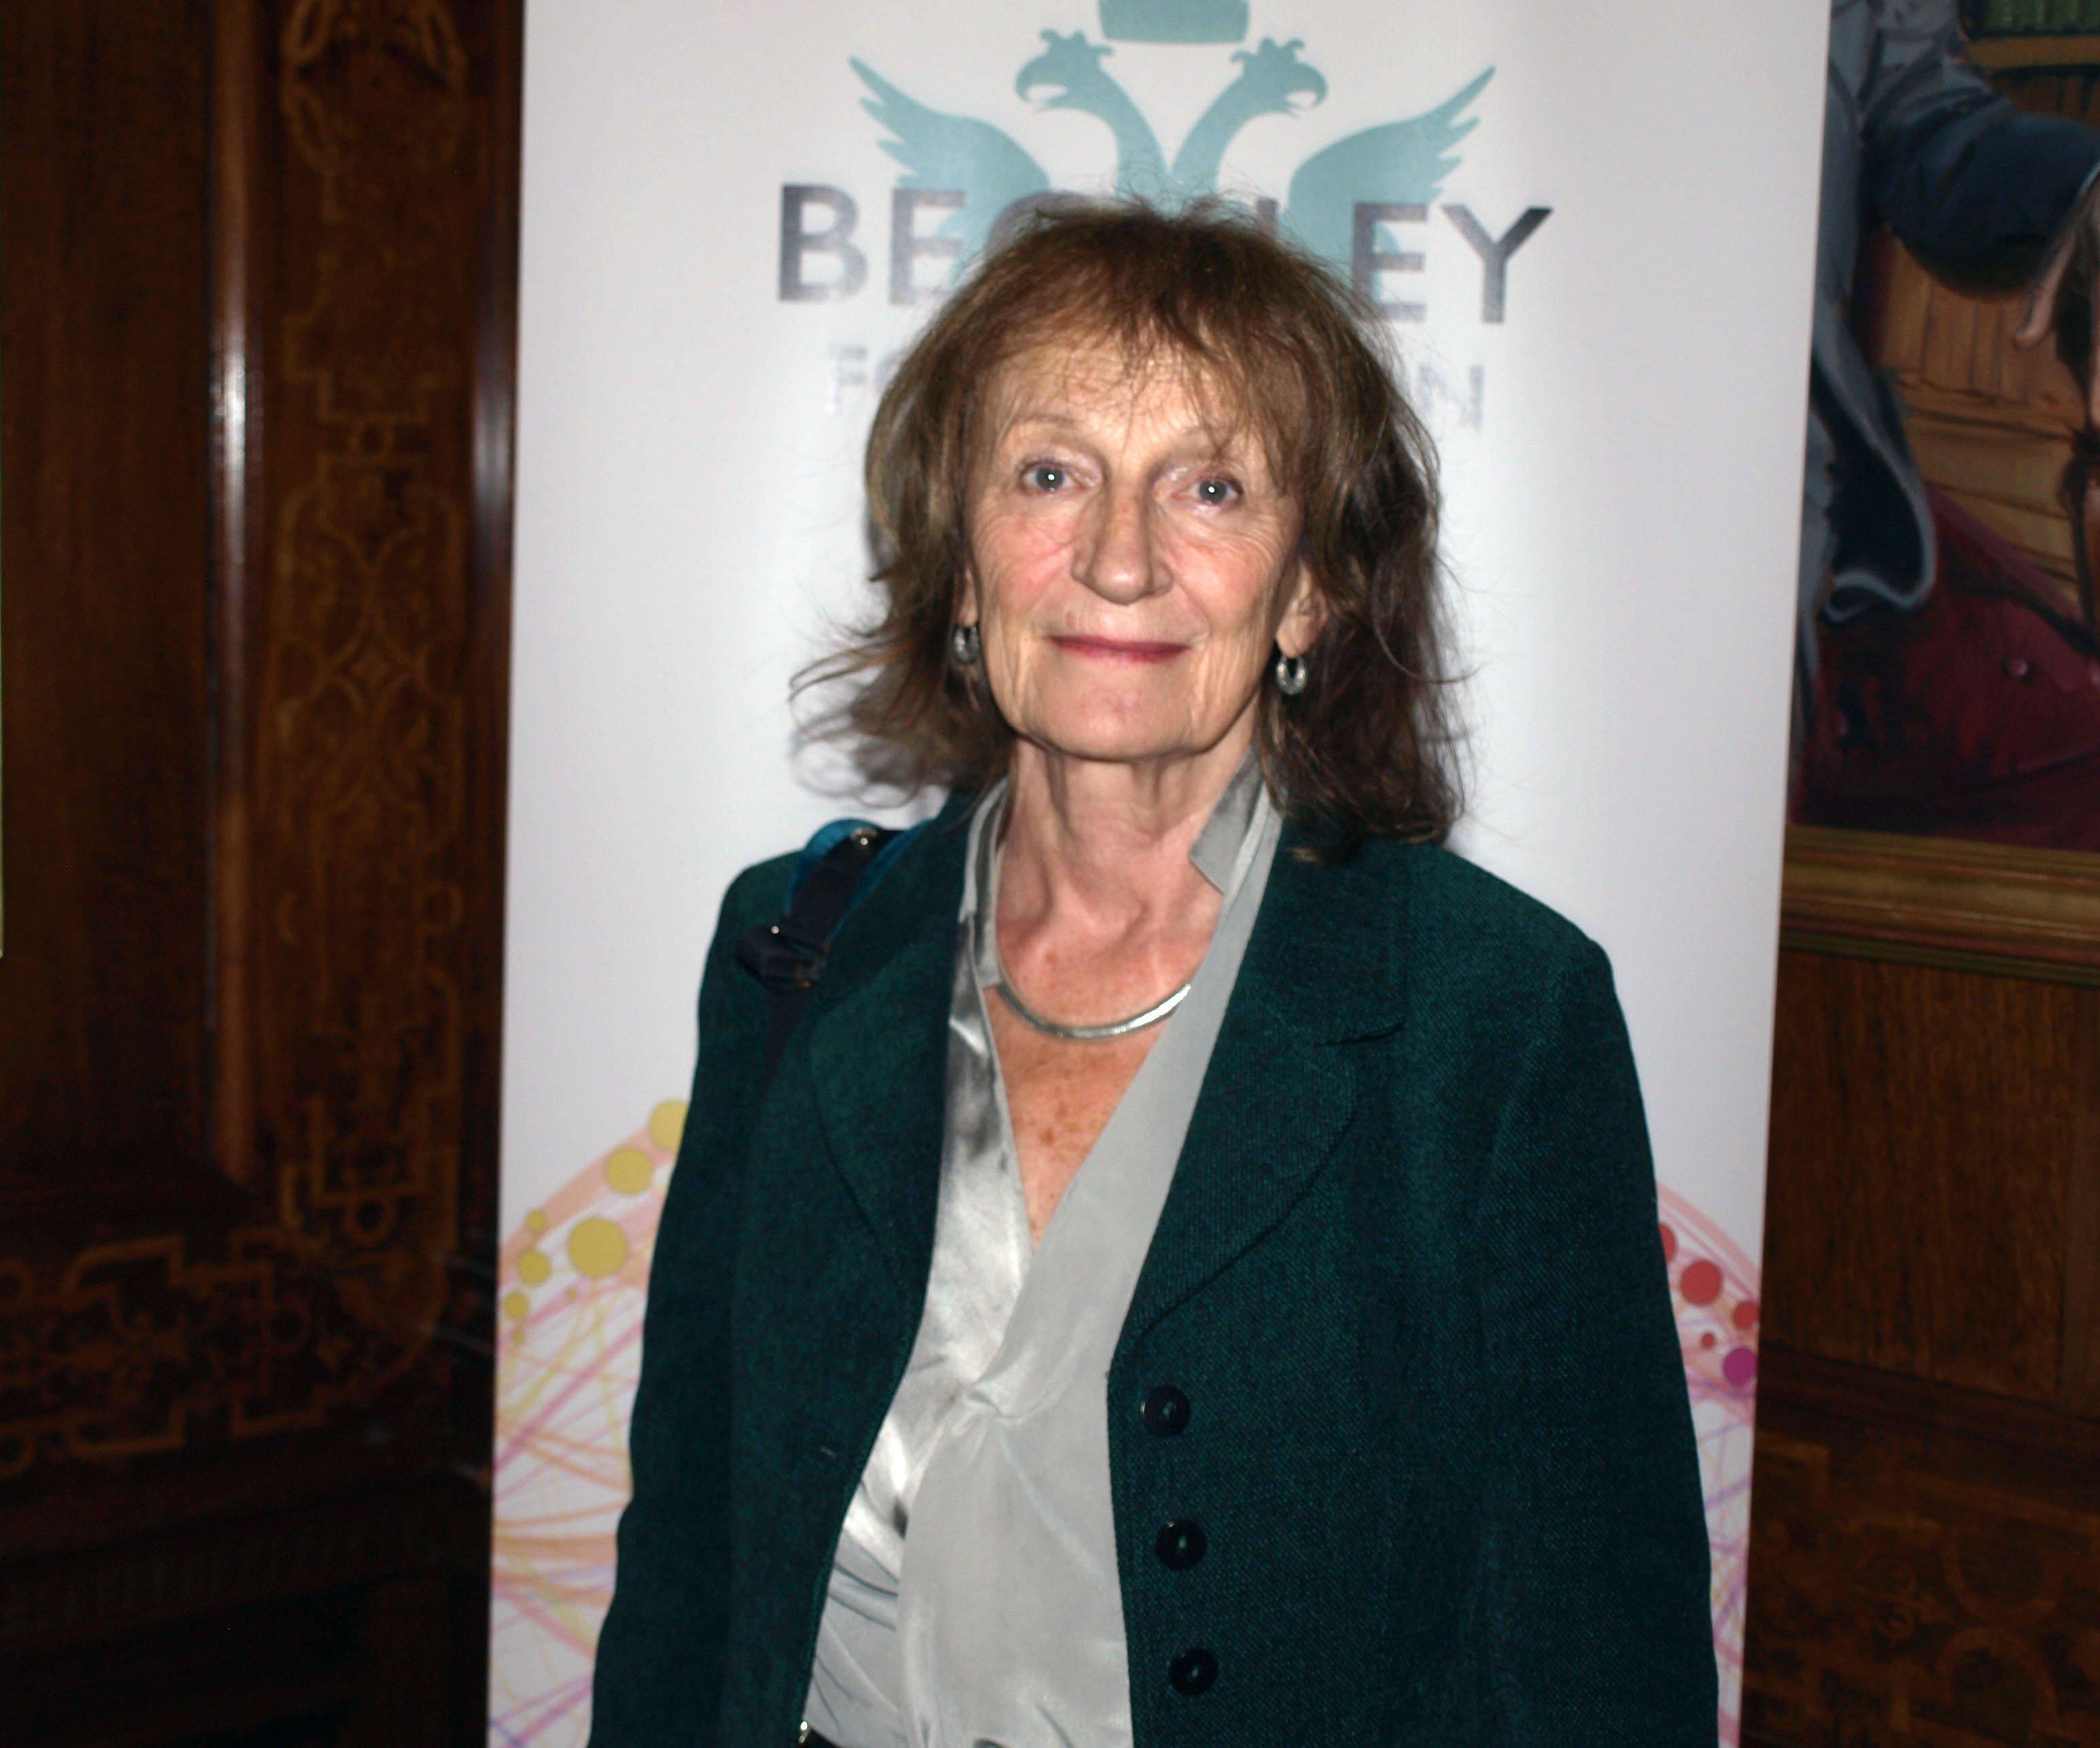 Amanda Feilding, founder of the Beckley Foundation